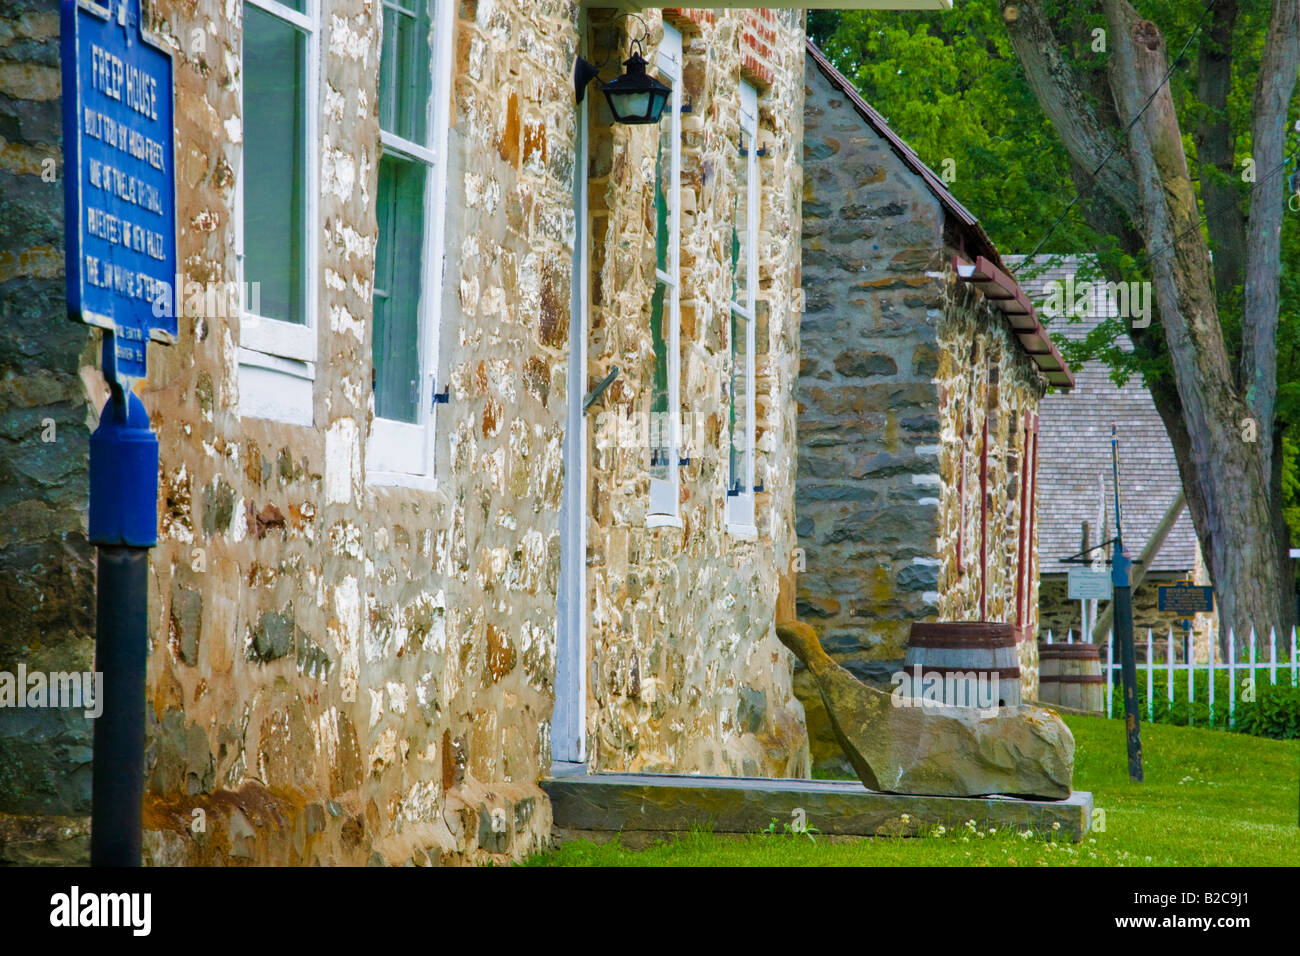 Limestone houses on Huguenot Street New Paltz New York - Stock Image